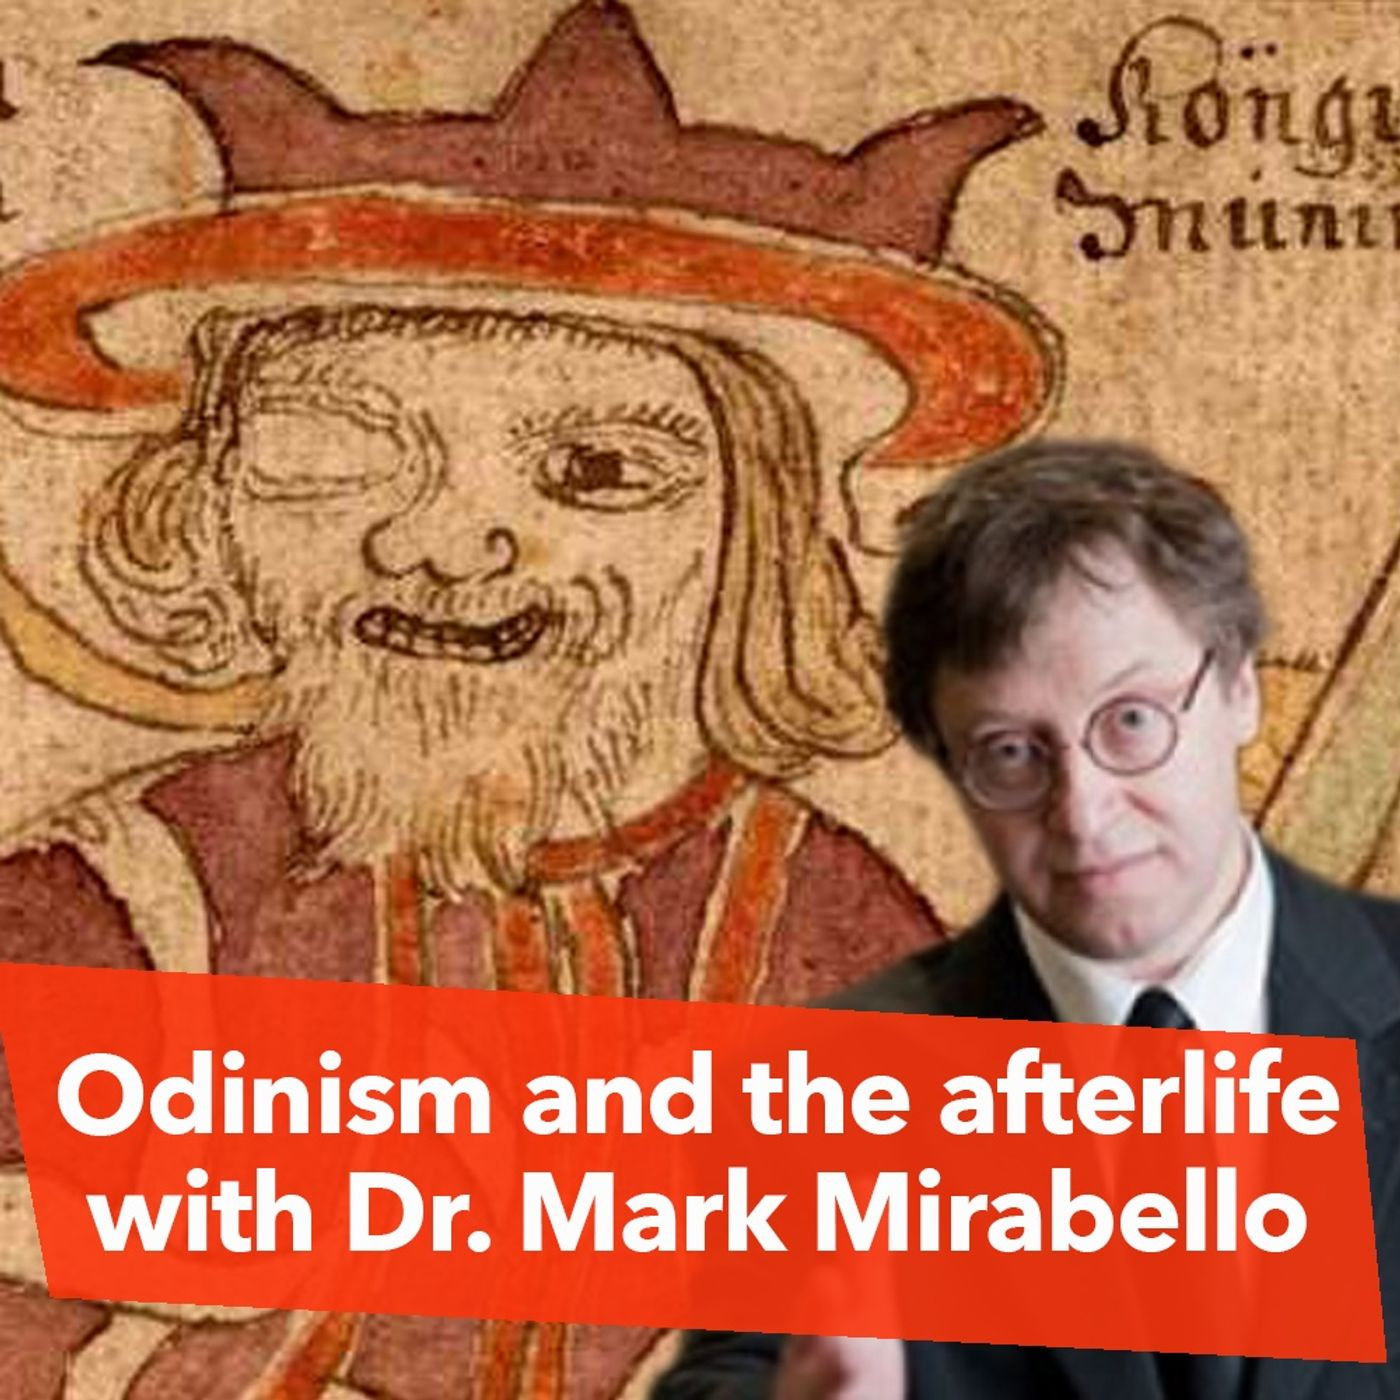 The Afterlife and the secret Odin Brotherhood with Dr. Mark Mirabello